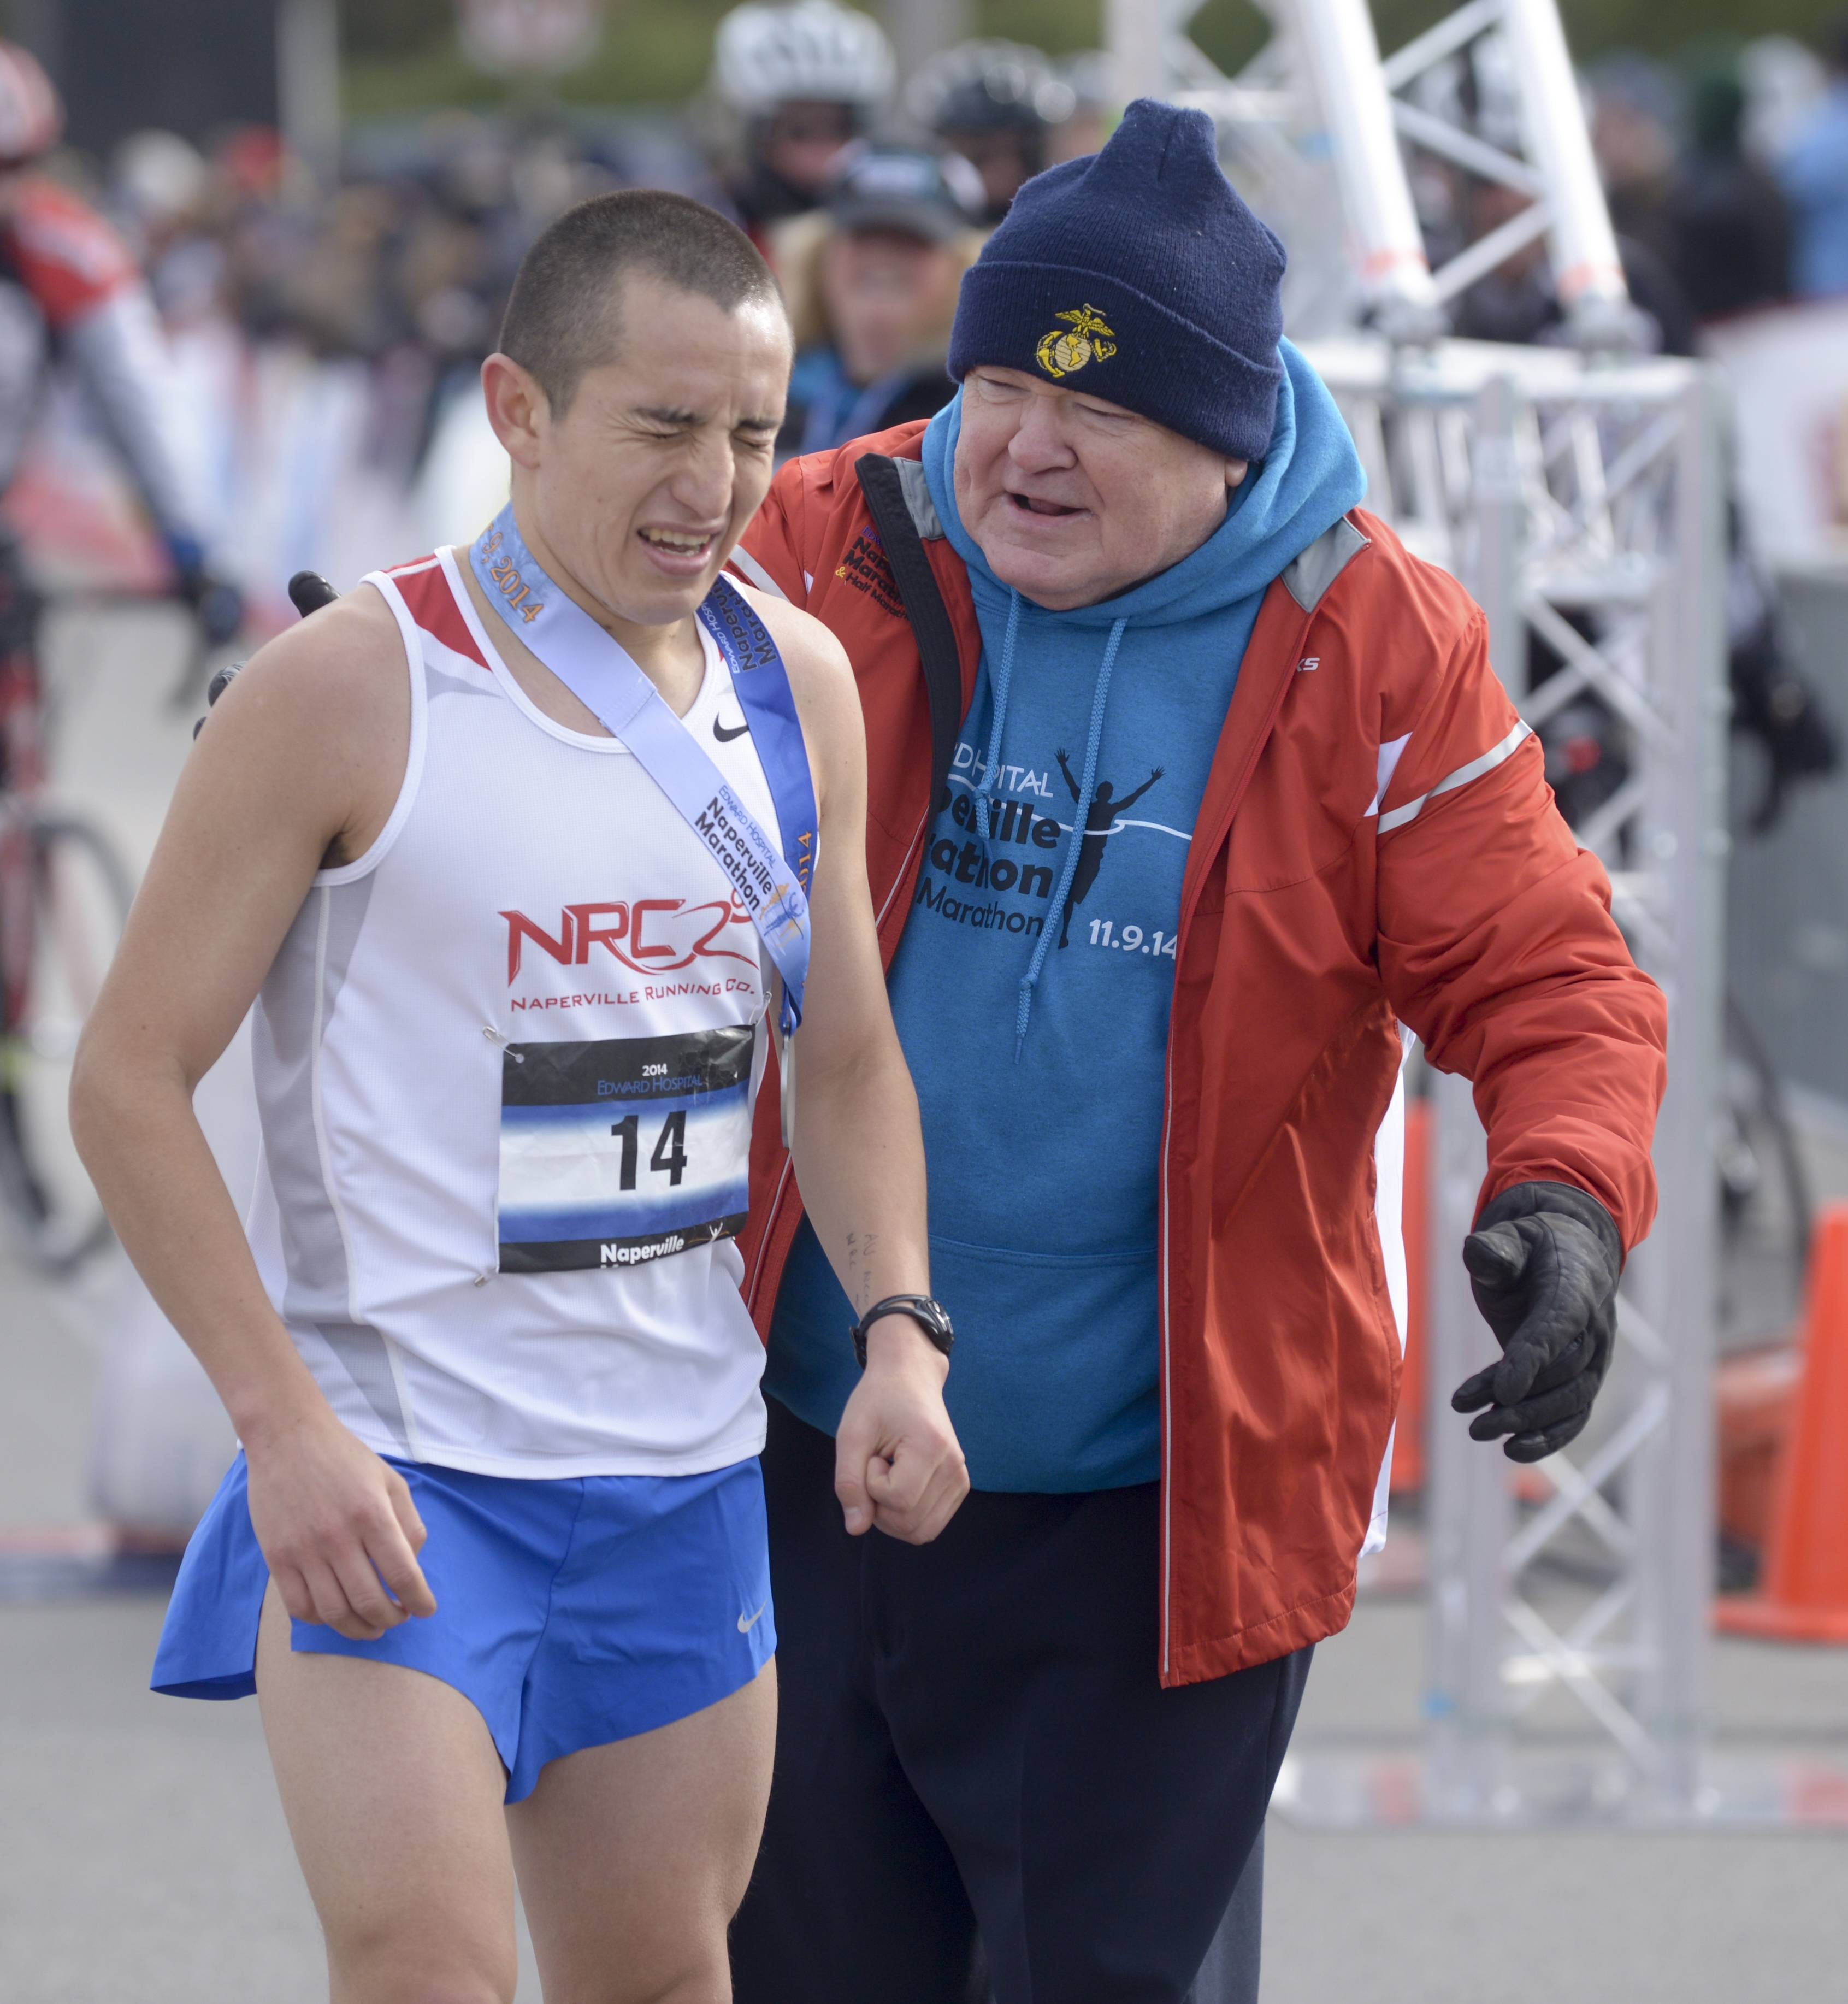 Pradel hands out medals at the finish line of the second annual Naperville Marathon.